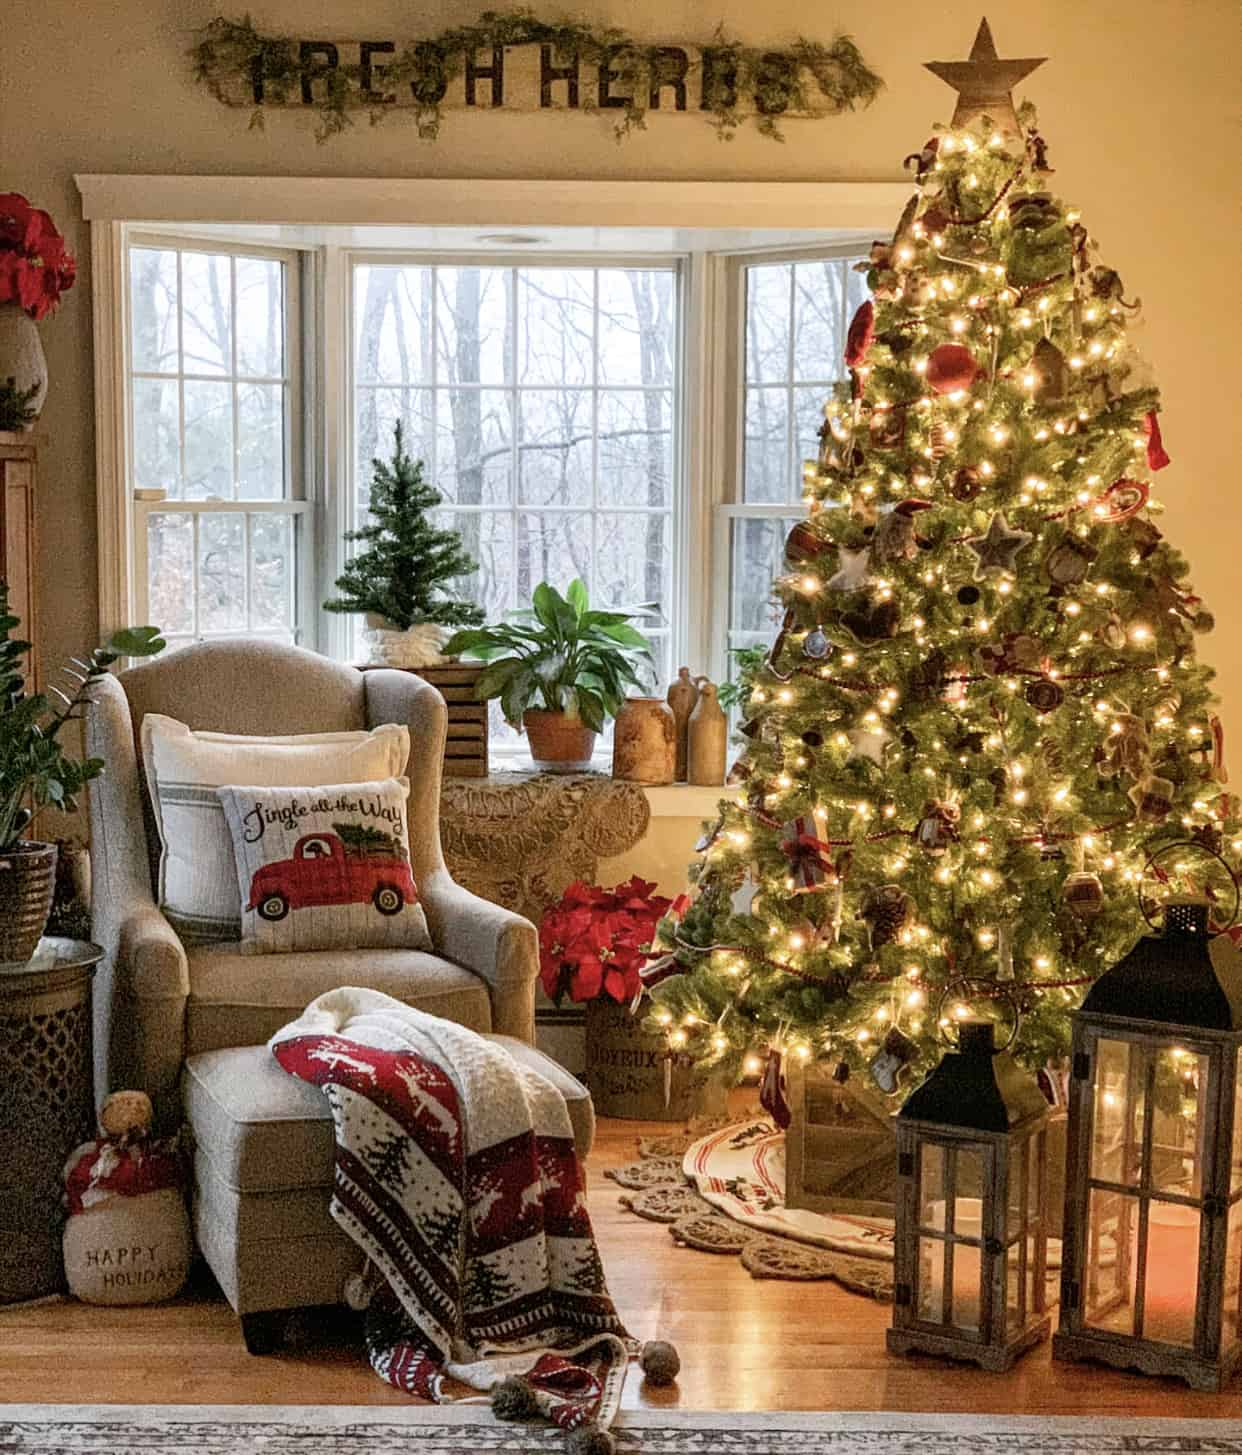 17 Christmas Tree Decorating Ideas Stacy Ling